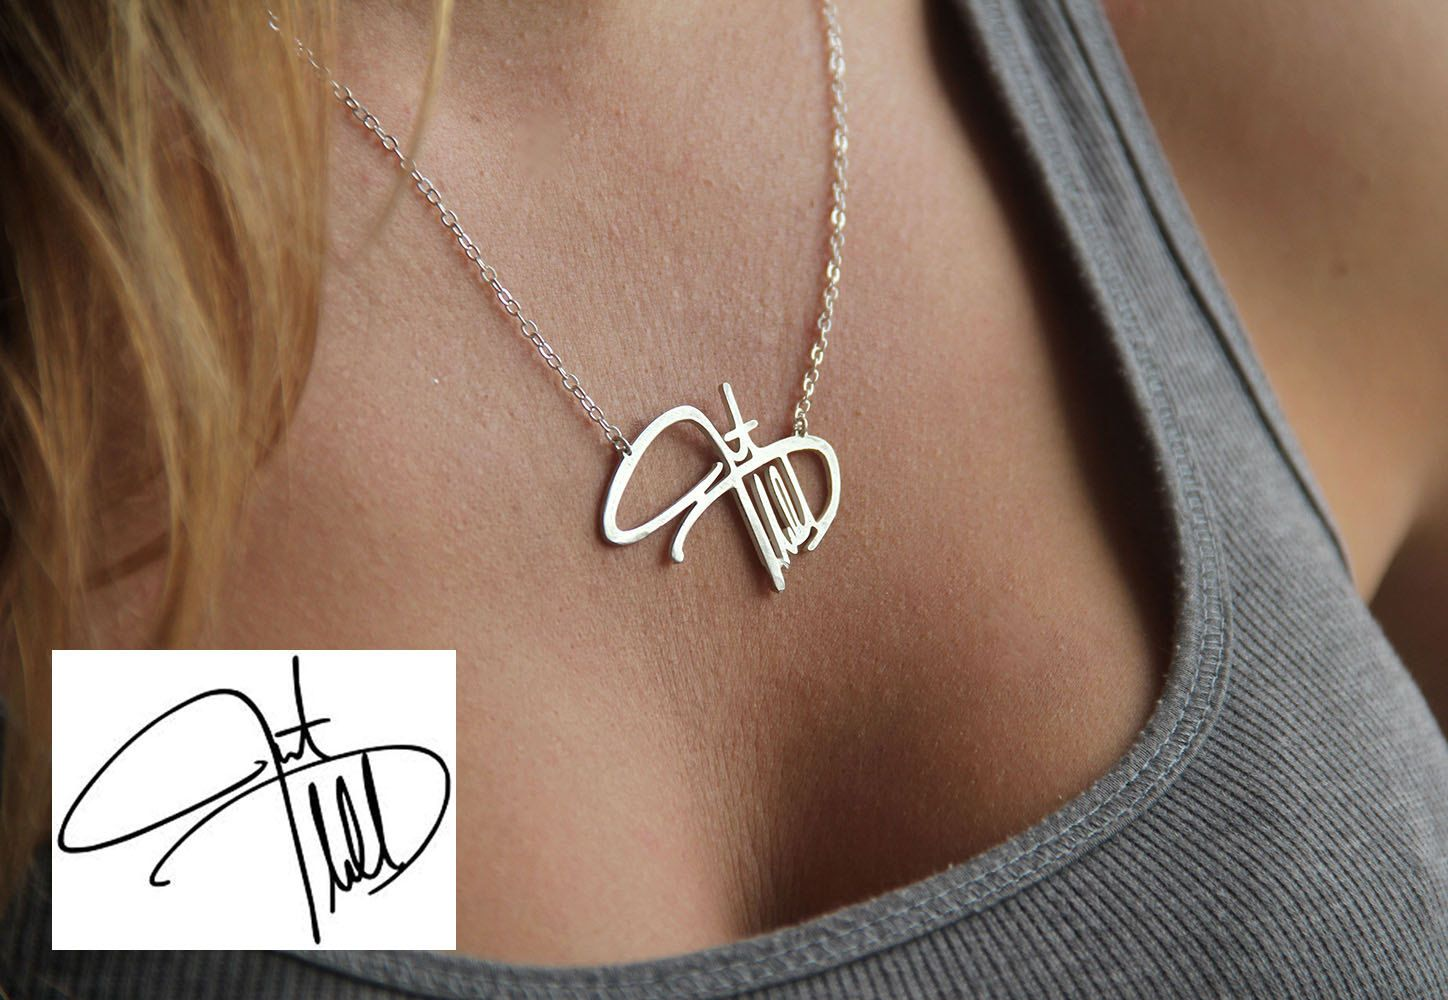 pin name necklaces silver necklace handwritten pendant memorial personal signature